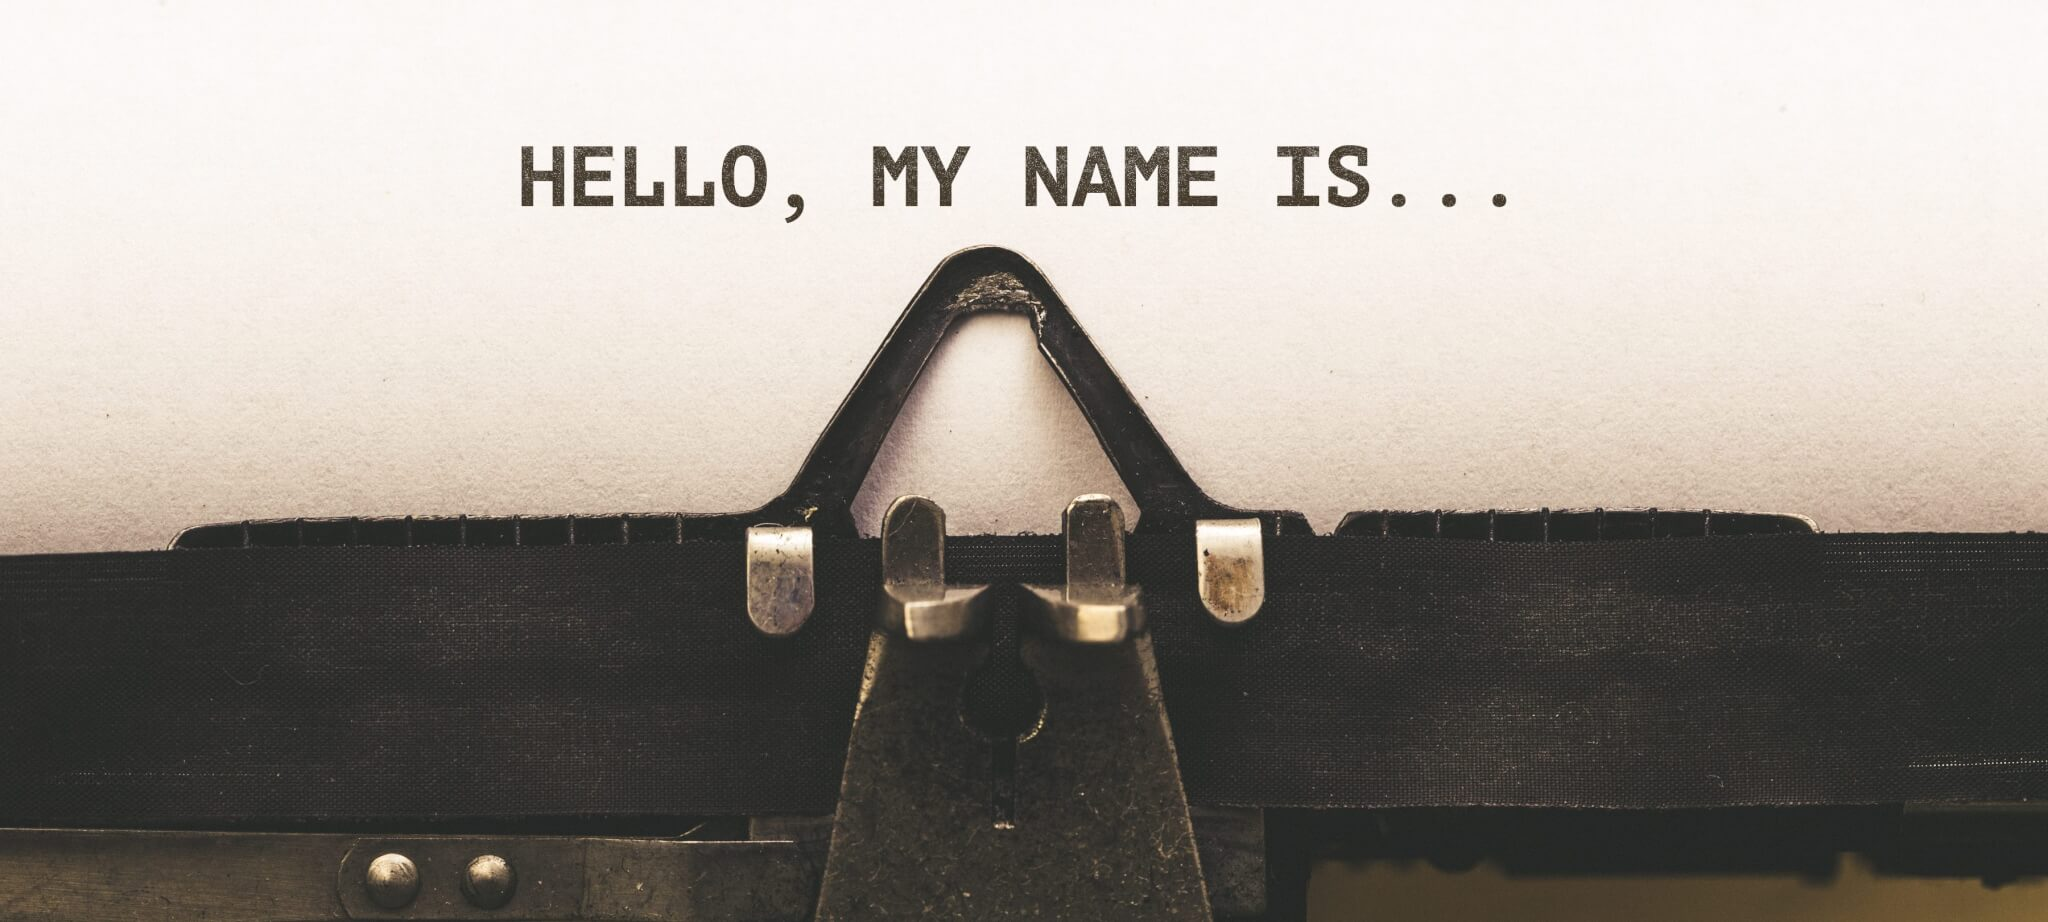 How Many People Have My Name? Here's How To Find Out!